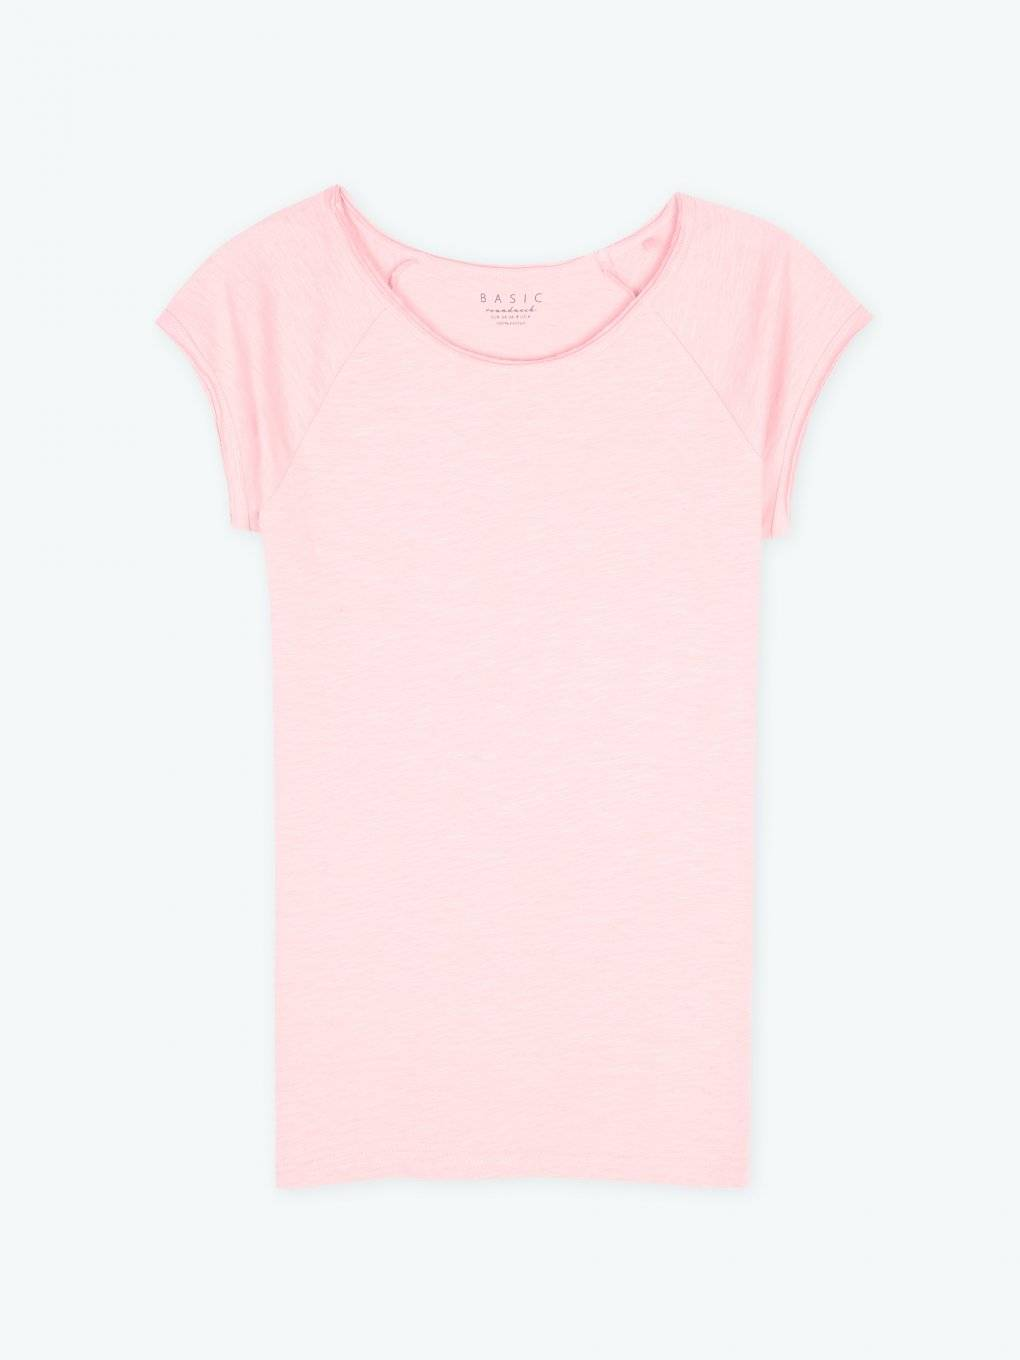 Basic jersey short sleeve t-shirt